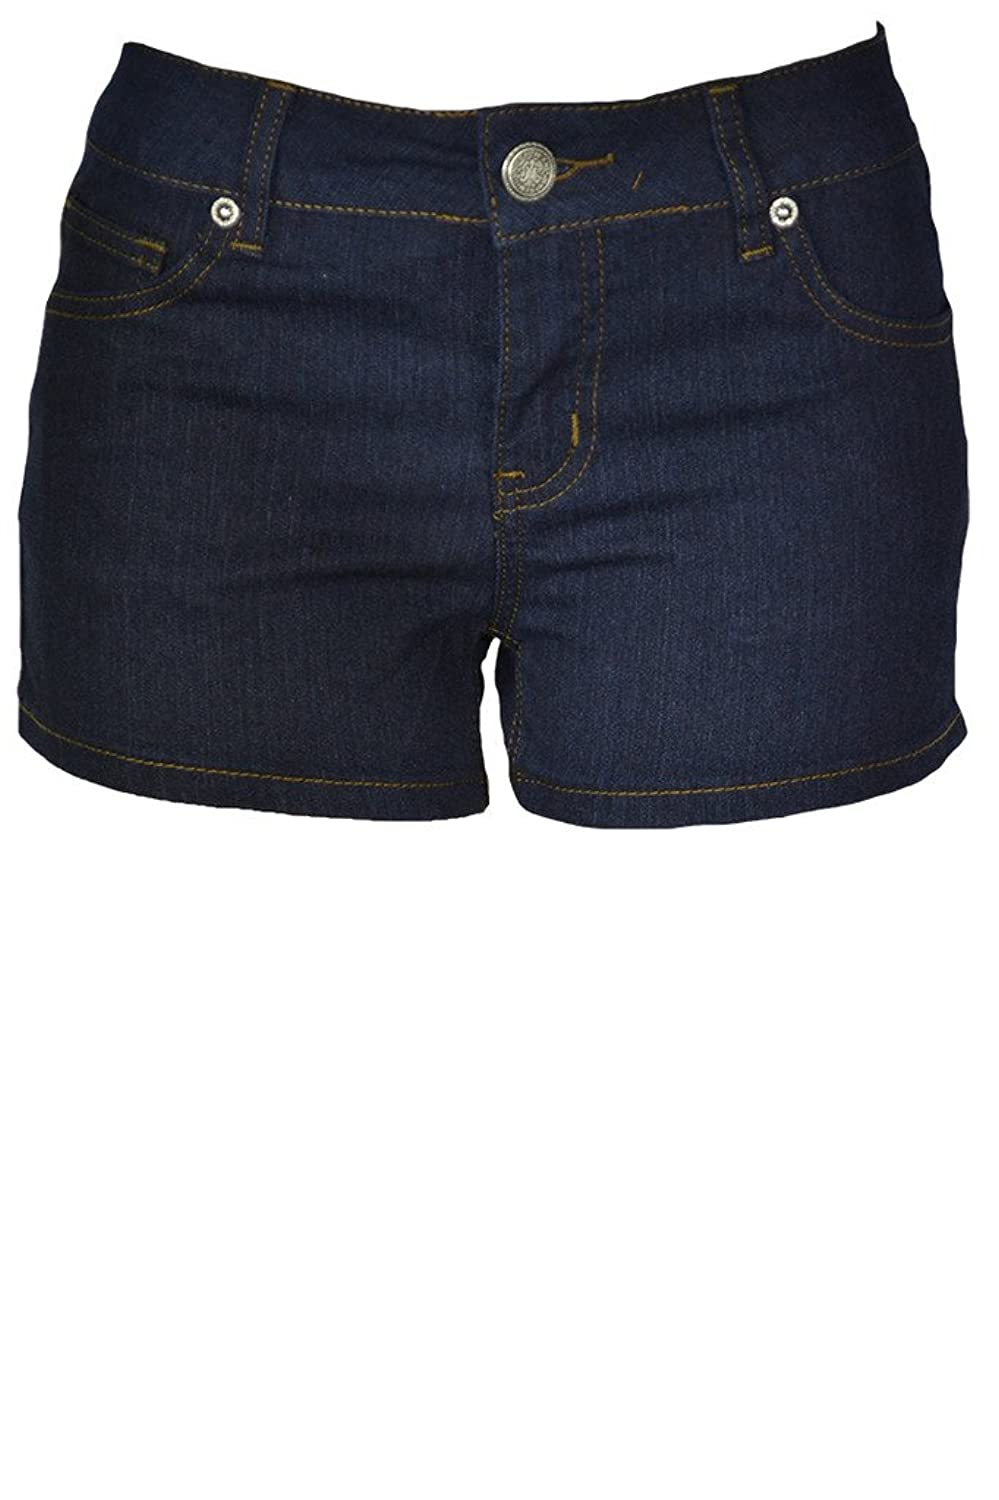 143Fashion Juniors Stretchy Jean Shorts